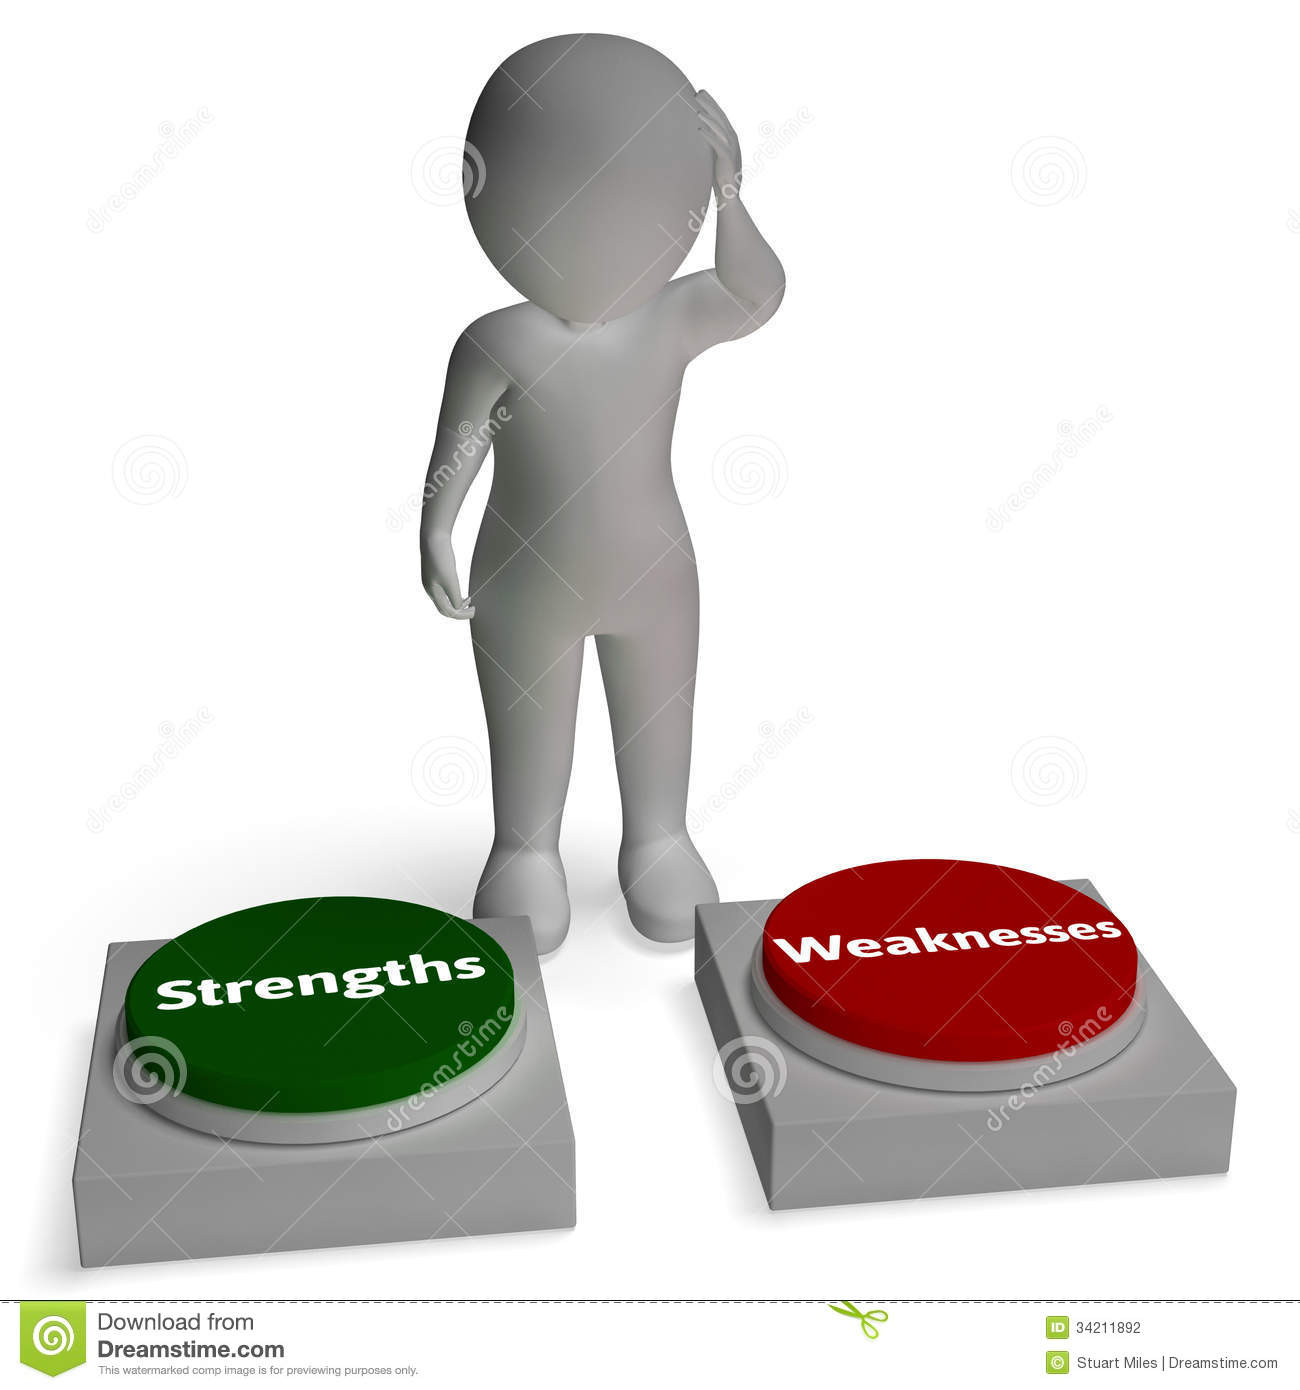 strength vs weakness person lifting word strong stock illustration strengths weaknesses buttons shows weakness or strength stock photography